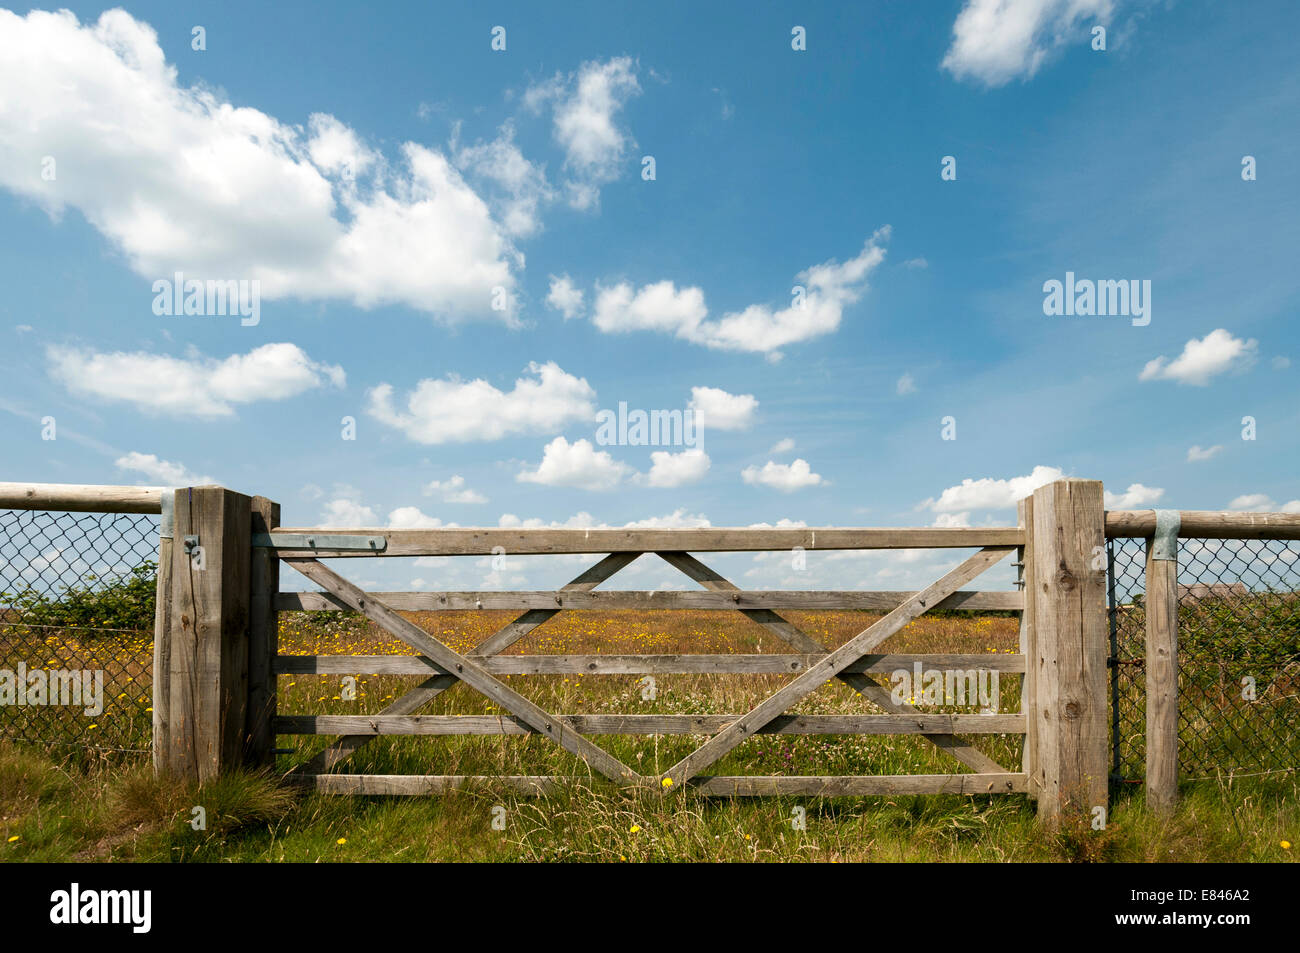 wooden five bar gate - Stock Image